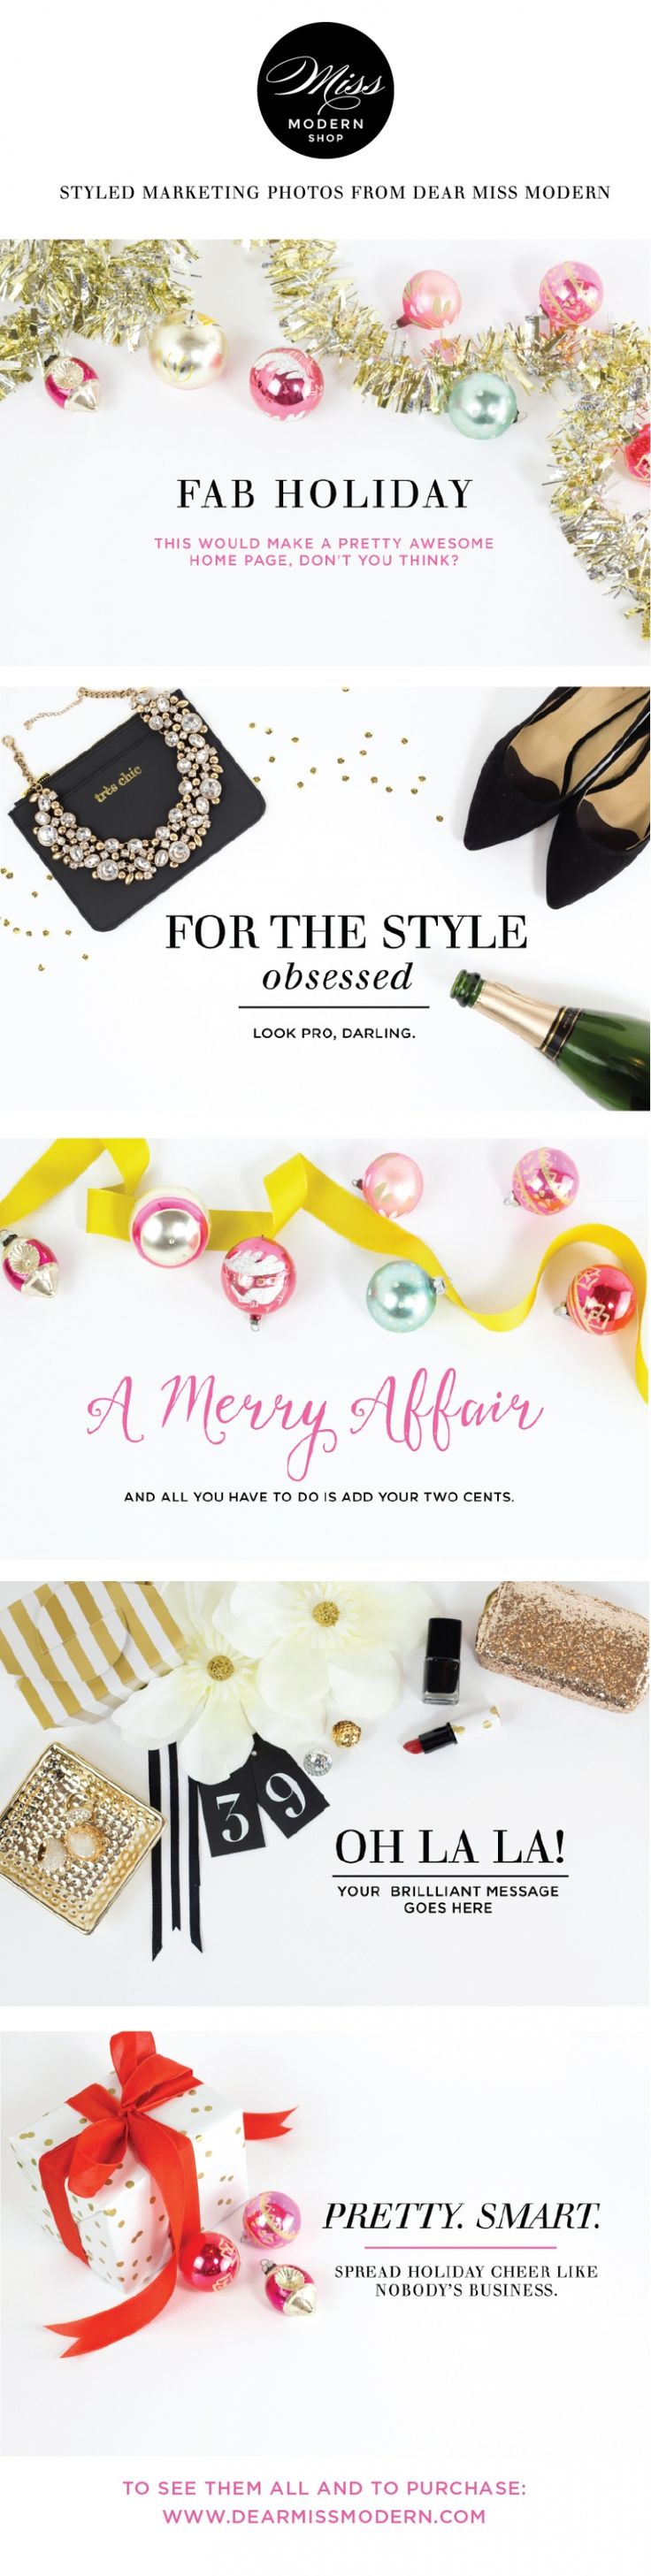 Miss Modern Styled Marketing Photos: available for instant download in the Miss…